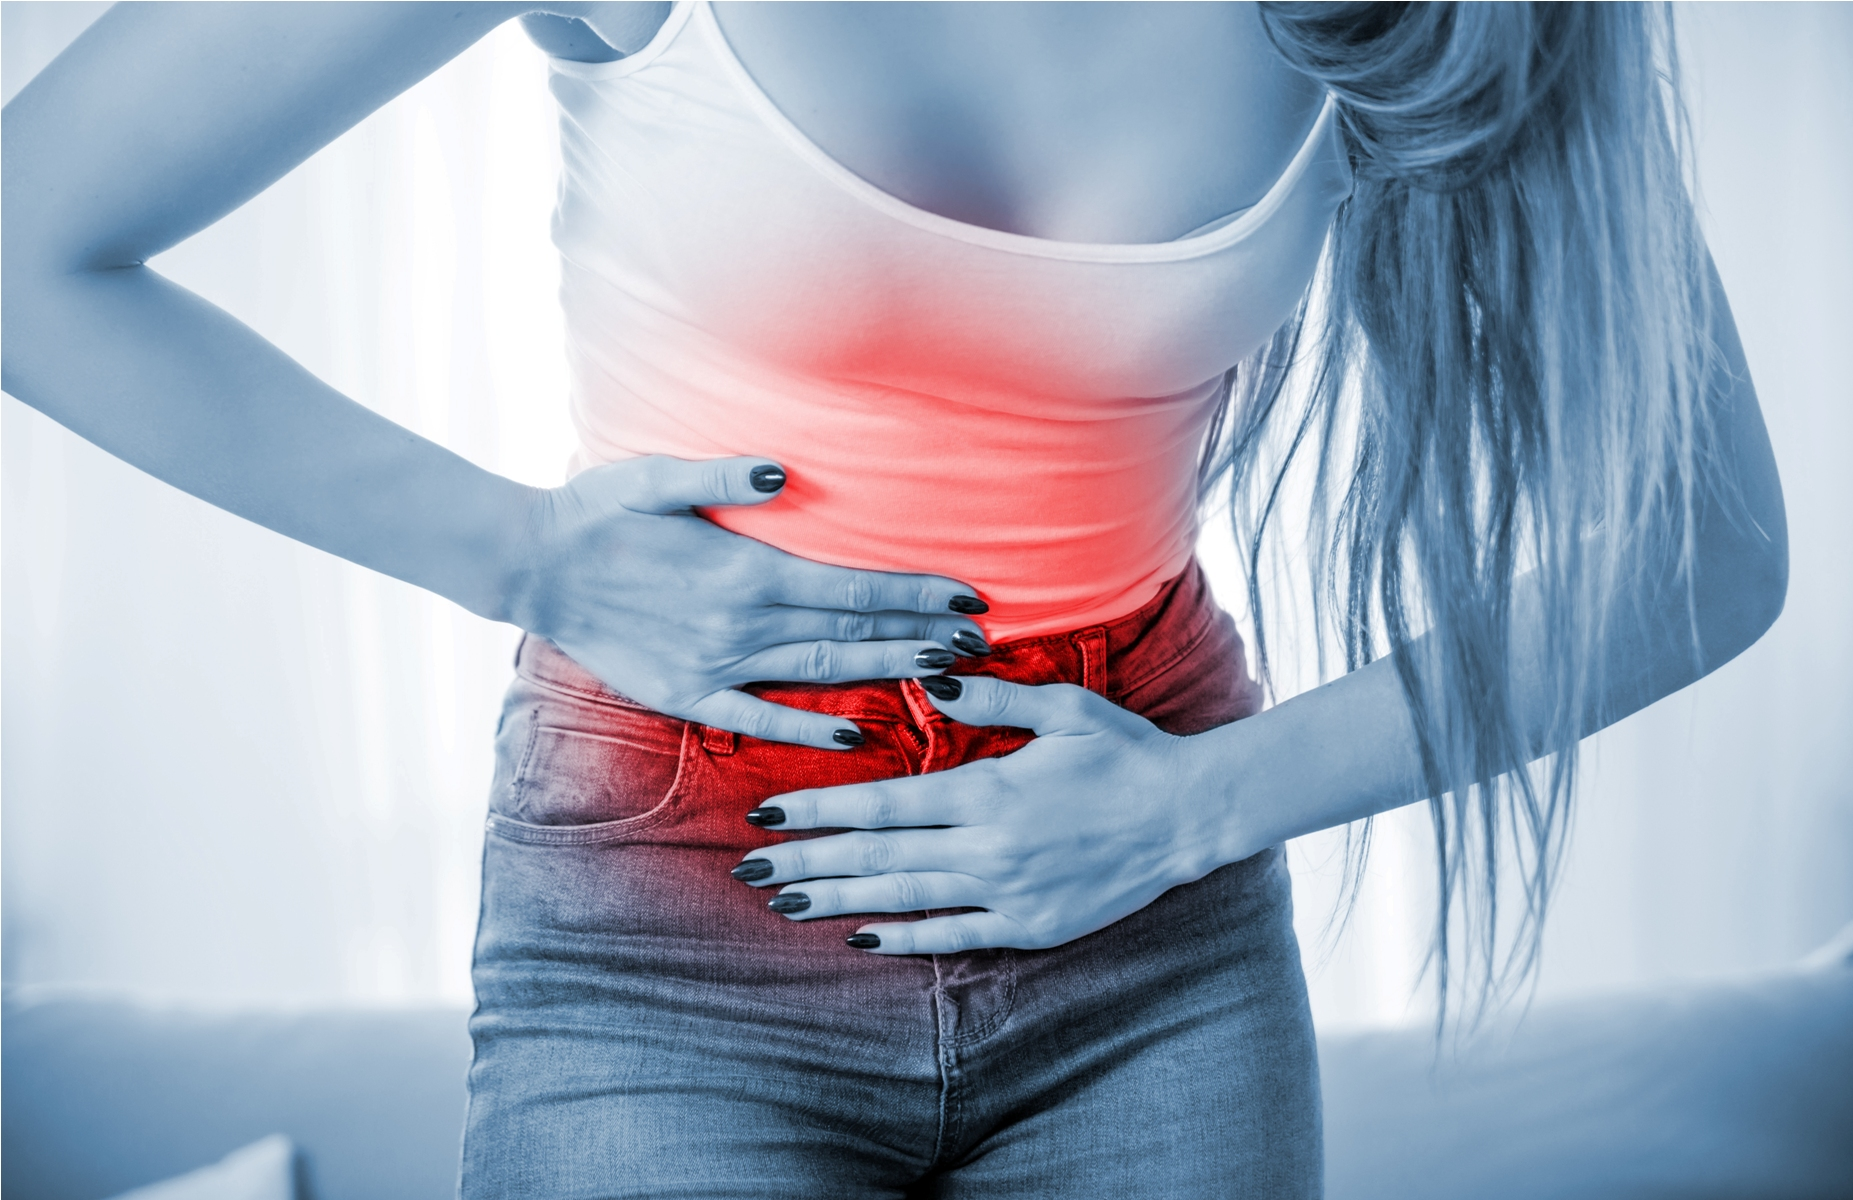 Young woman at home suffering from abdominal pain